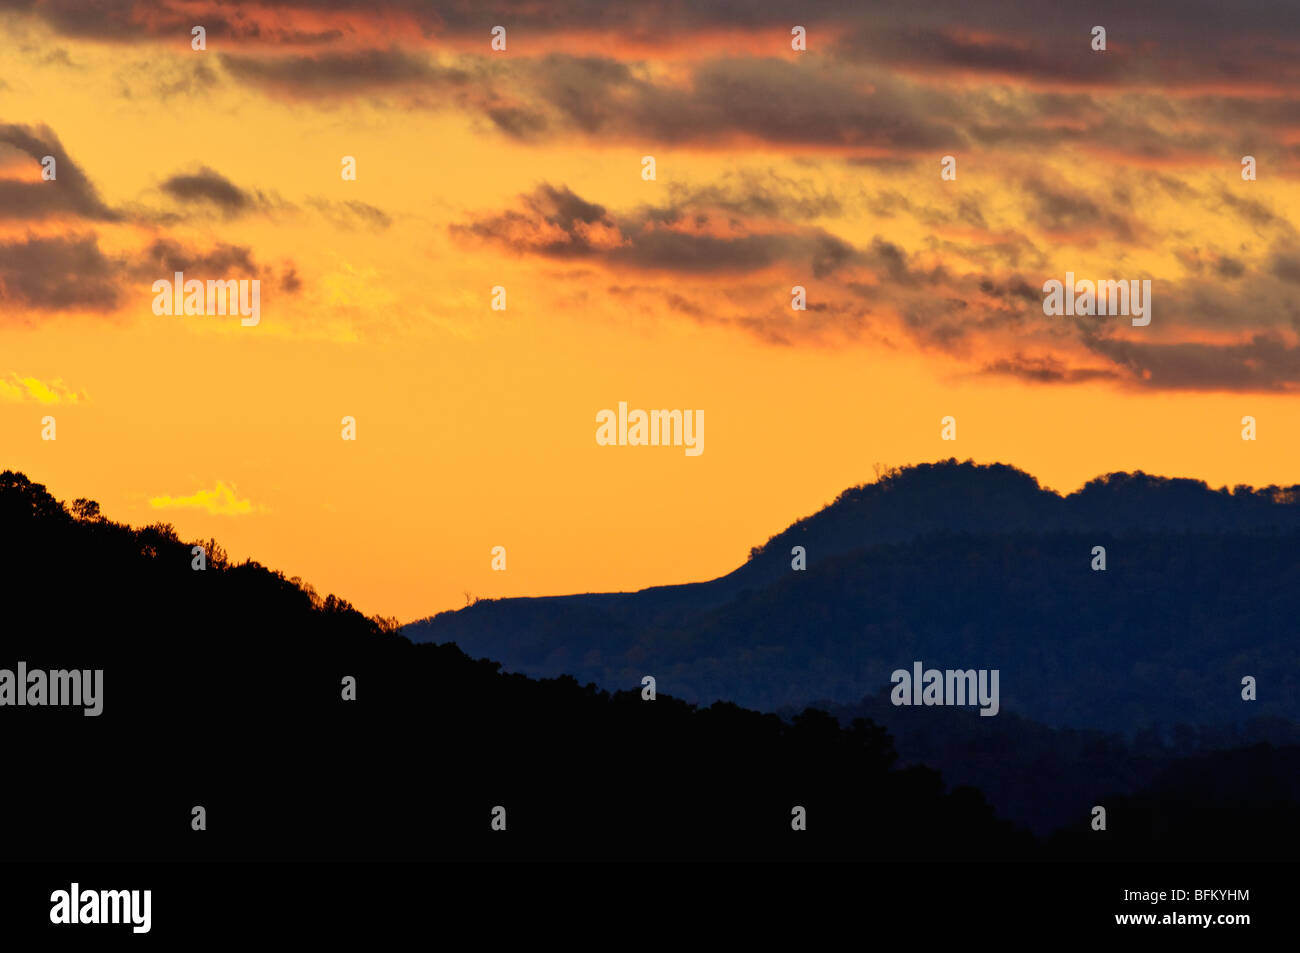 Sunset Over Pine Mountain from State Line Overlook in Breaks Interstate Park in Virginia - Stock Image